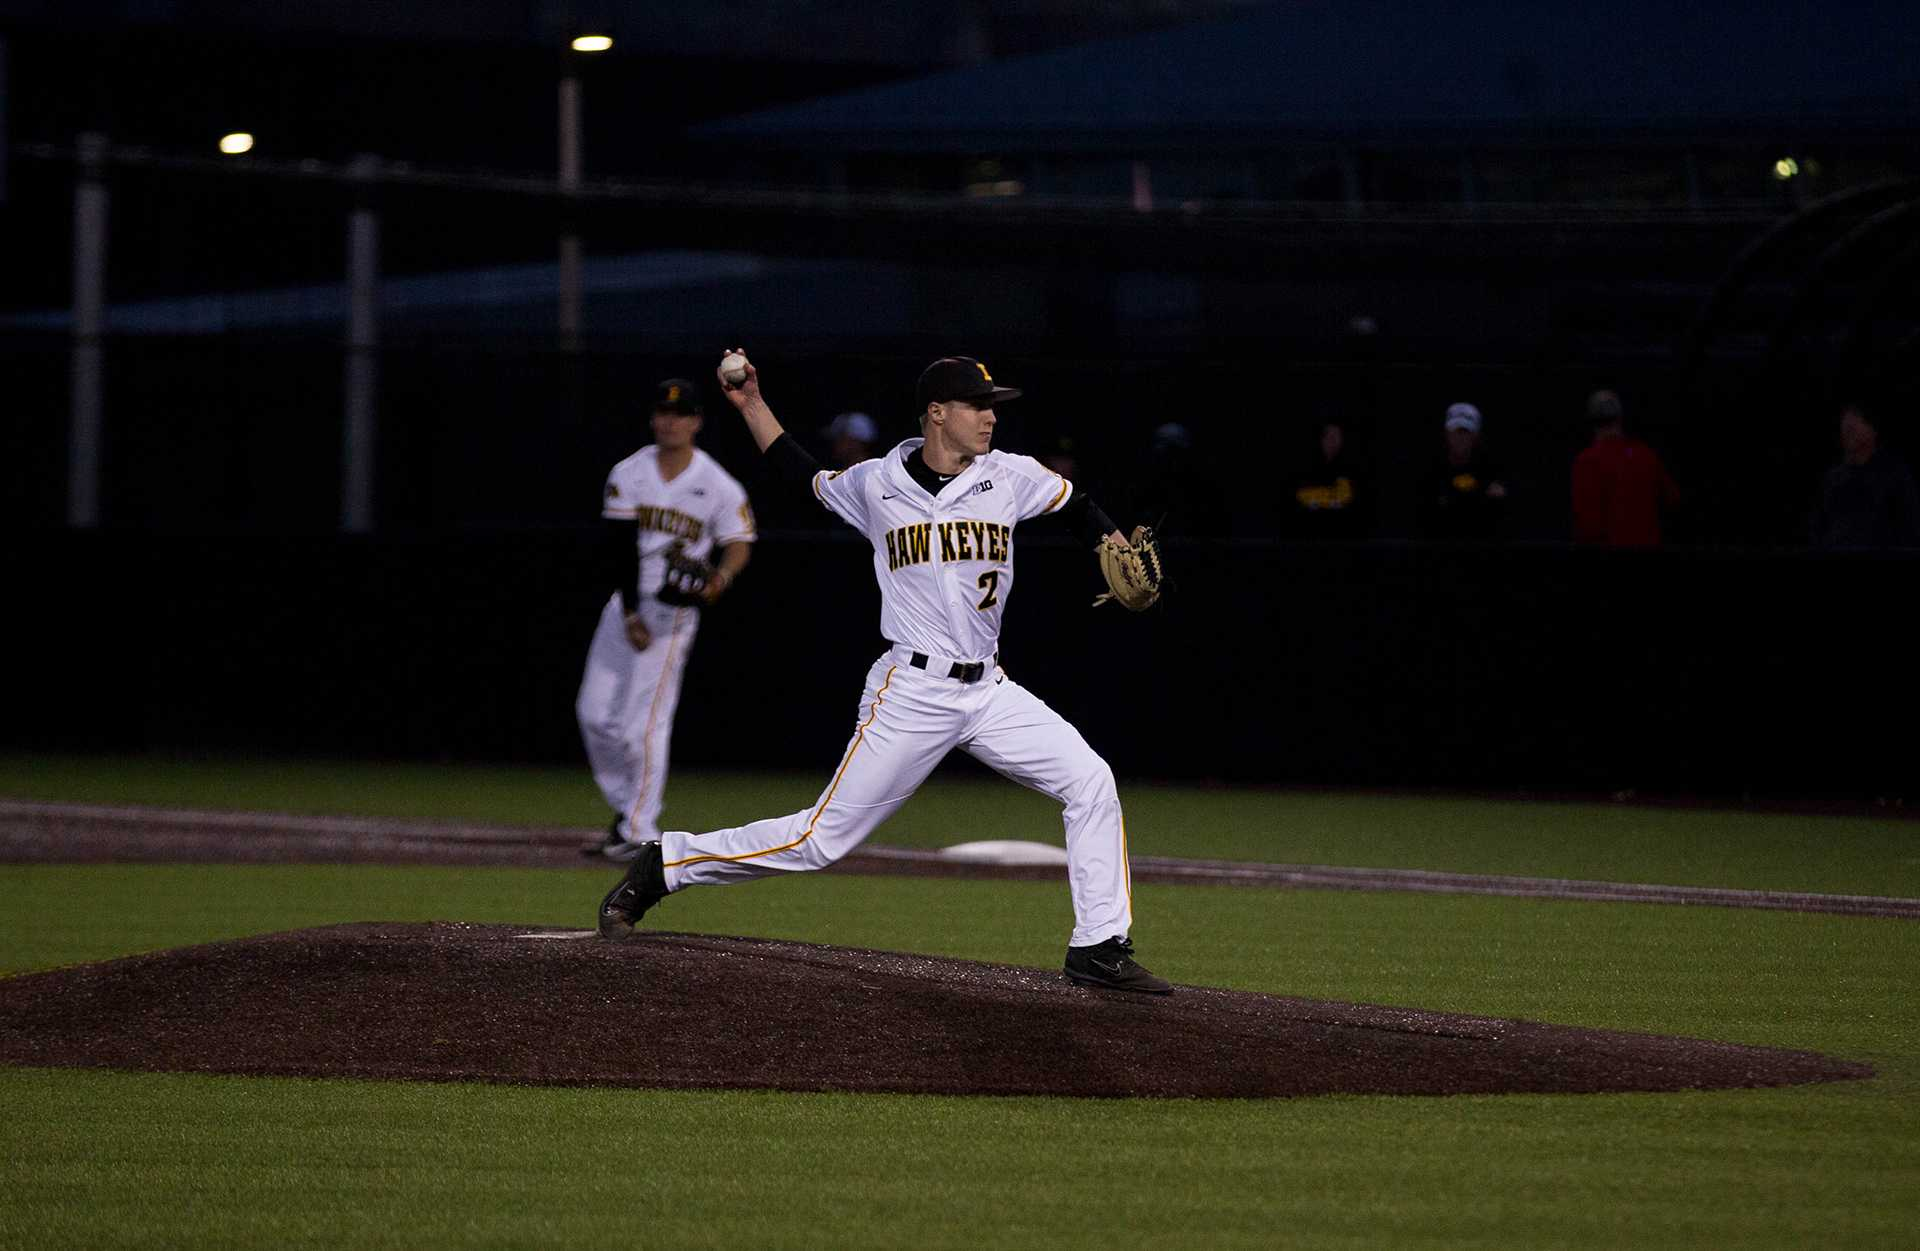 Zach Daniels pitches during Iowa's game against Michigan at Banks Field  on April 27, 2018. The Hawkeyes won the game 4-2. (Megan Nagorzanski/The Daily Iowan)